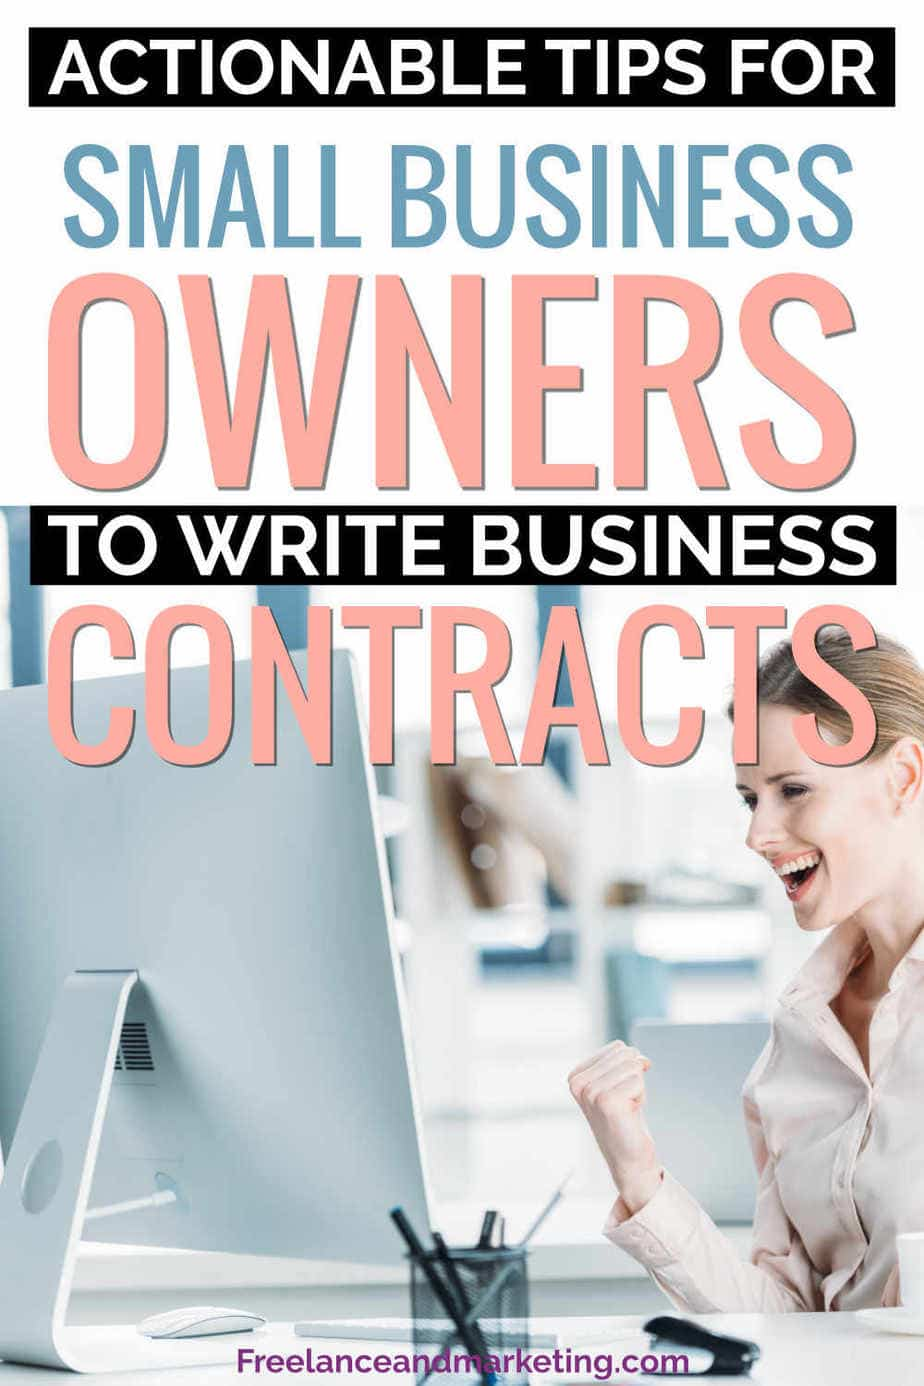 Small business owners should know about business contracts and how to write business contracts. Some small business owners decide to write their business contracts themselves, they must know how to make contracts, what the important sections are, how to make the contracts enforceable. #smallbusiness #legalbusiness #smallbusinesscontracts #legalcontracts #contracttemplates